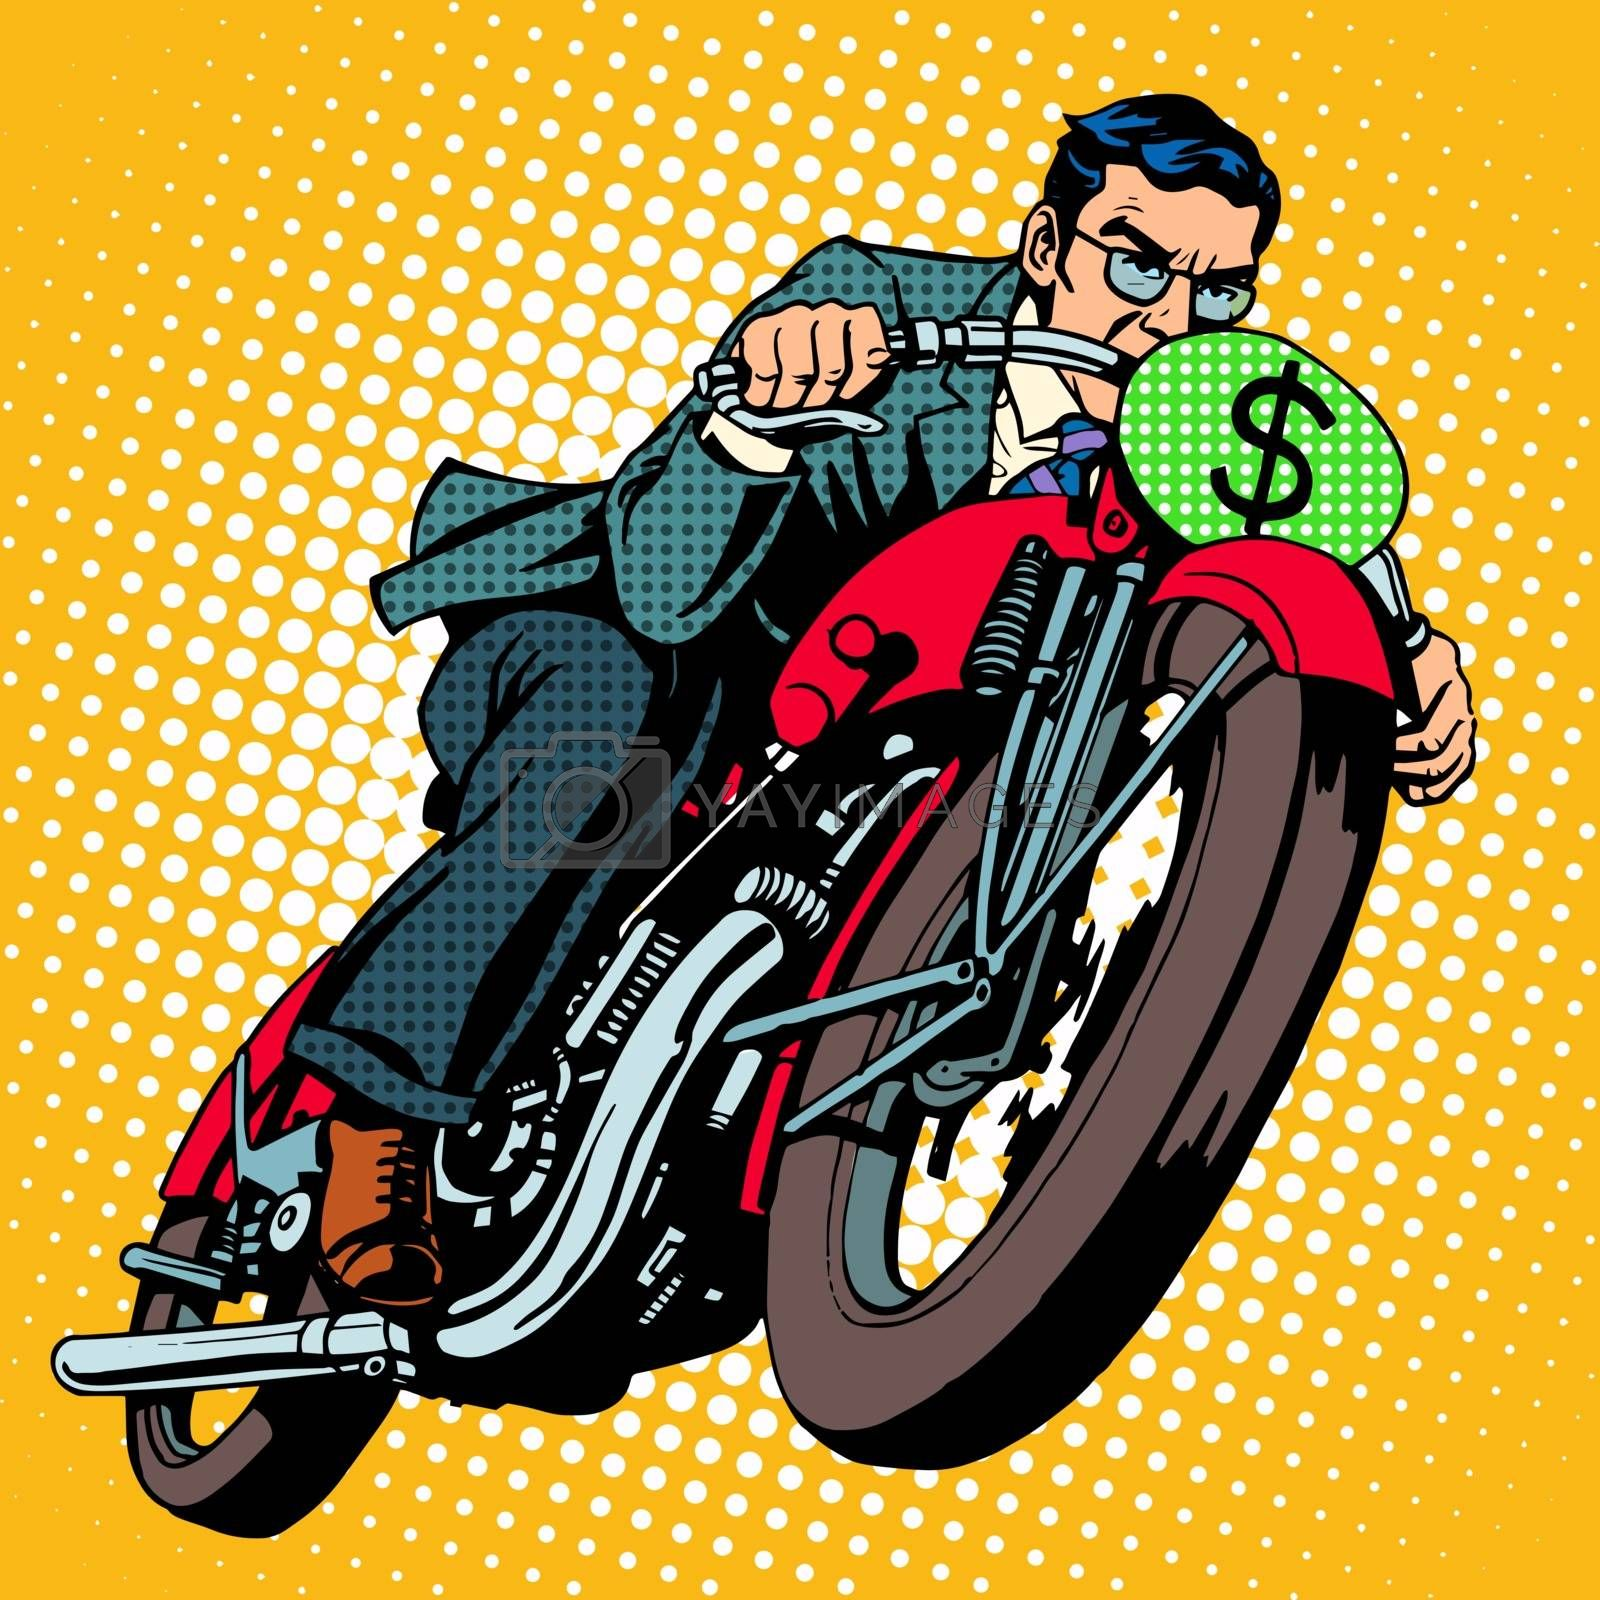 Businessman on a motorcycle. Financial success pop art retro style. The dollar sign instead of the number of transport